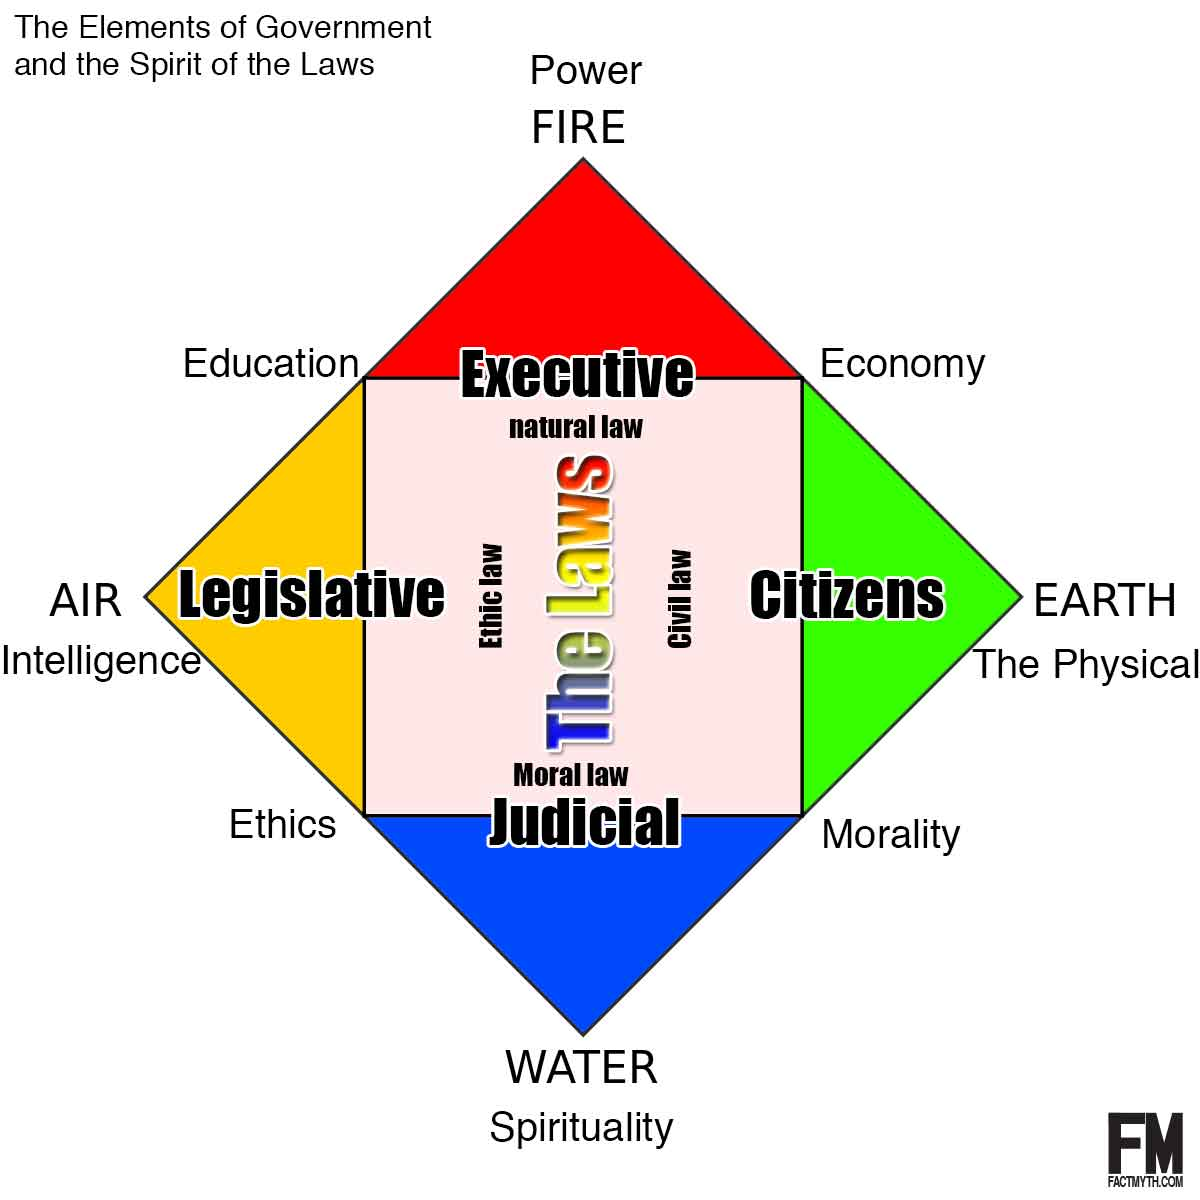 The Elements of Government and the Spirit of the Laws